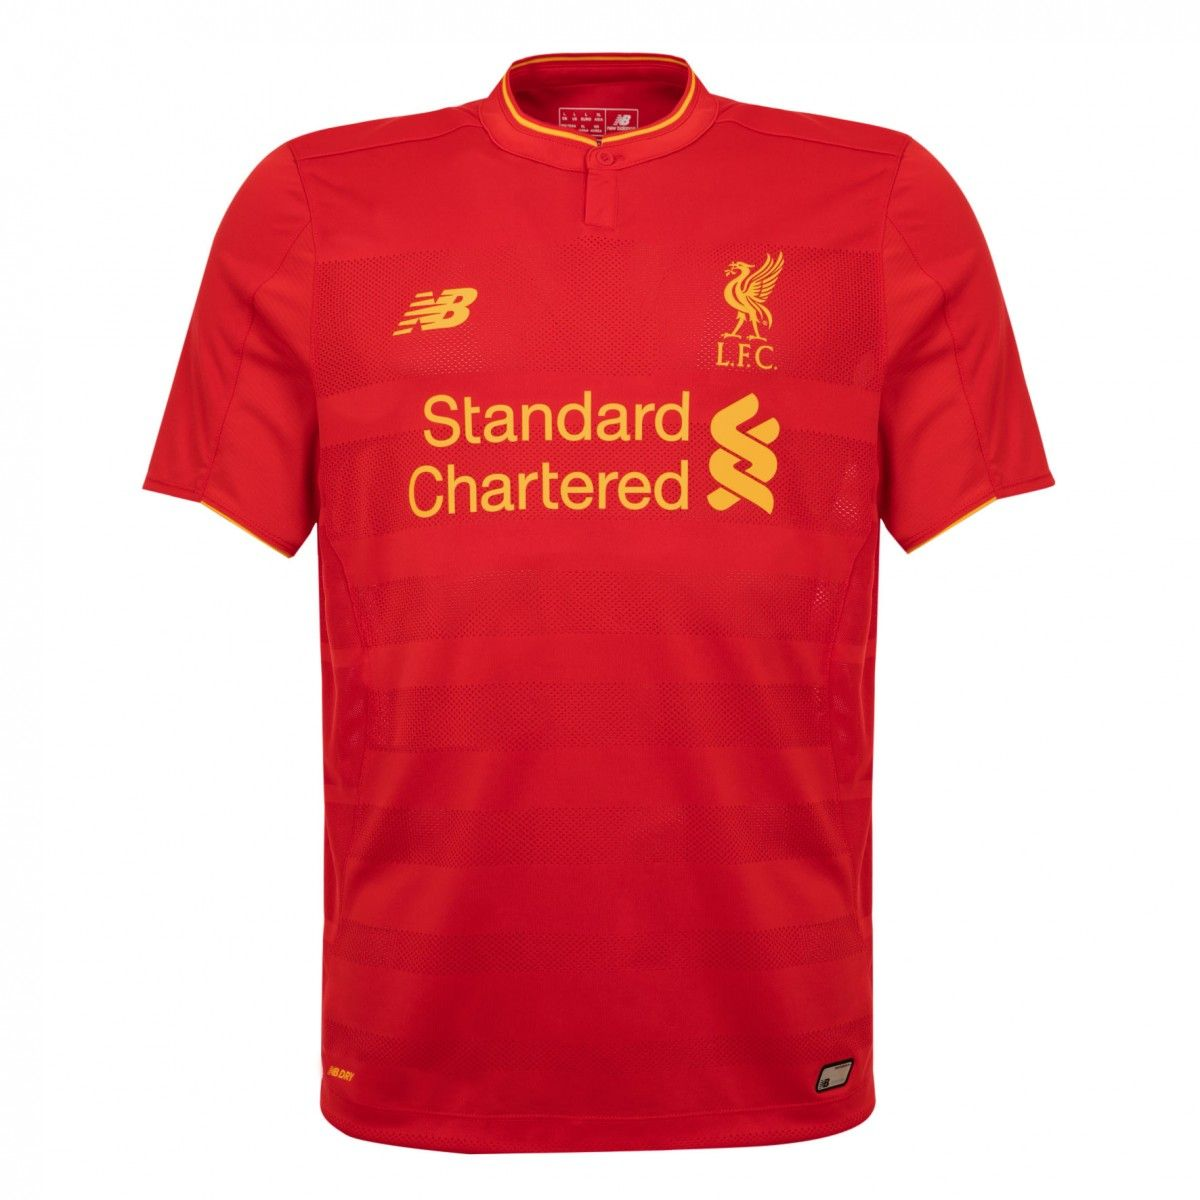 LFC Mens Short Sleeve Home Shirt Red. No name or number on back